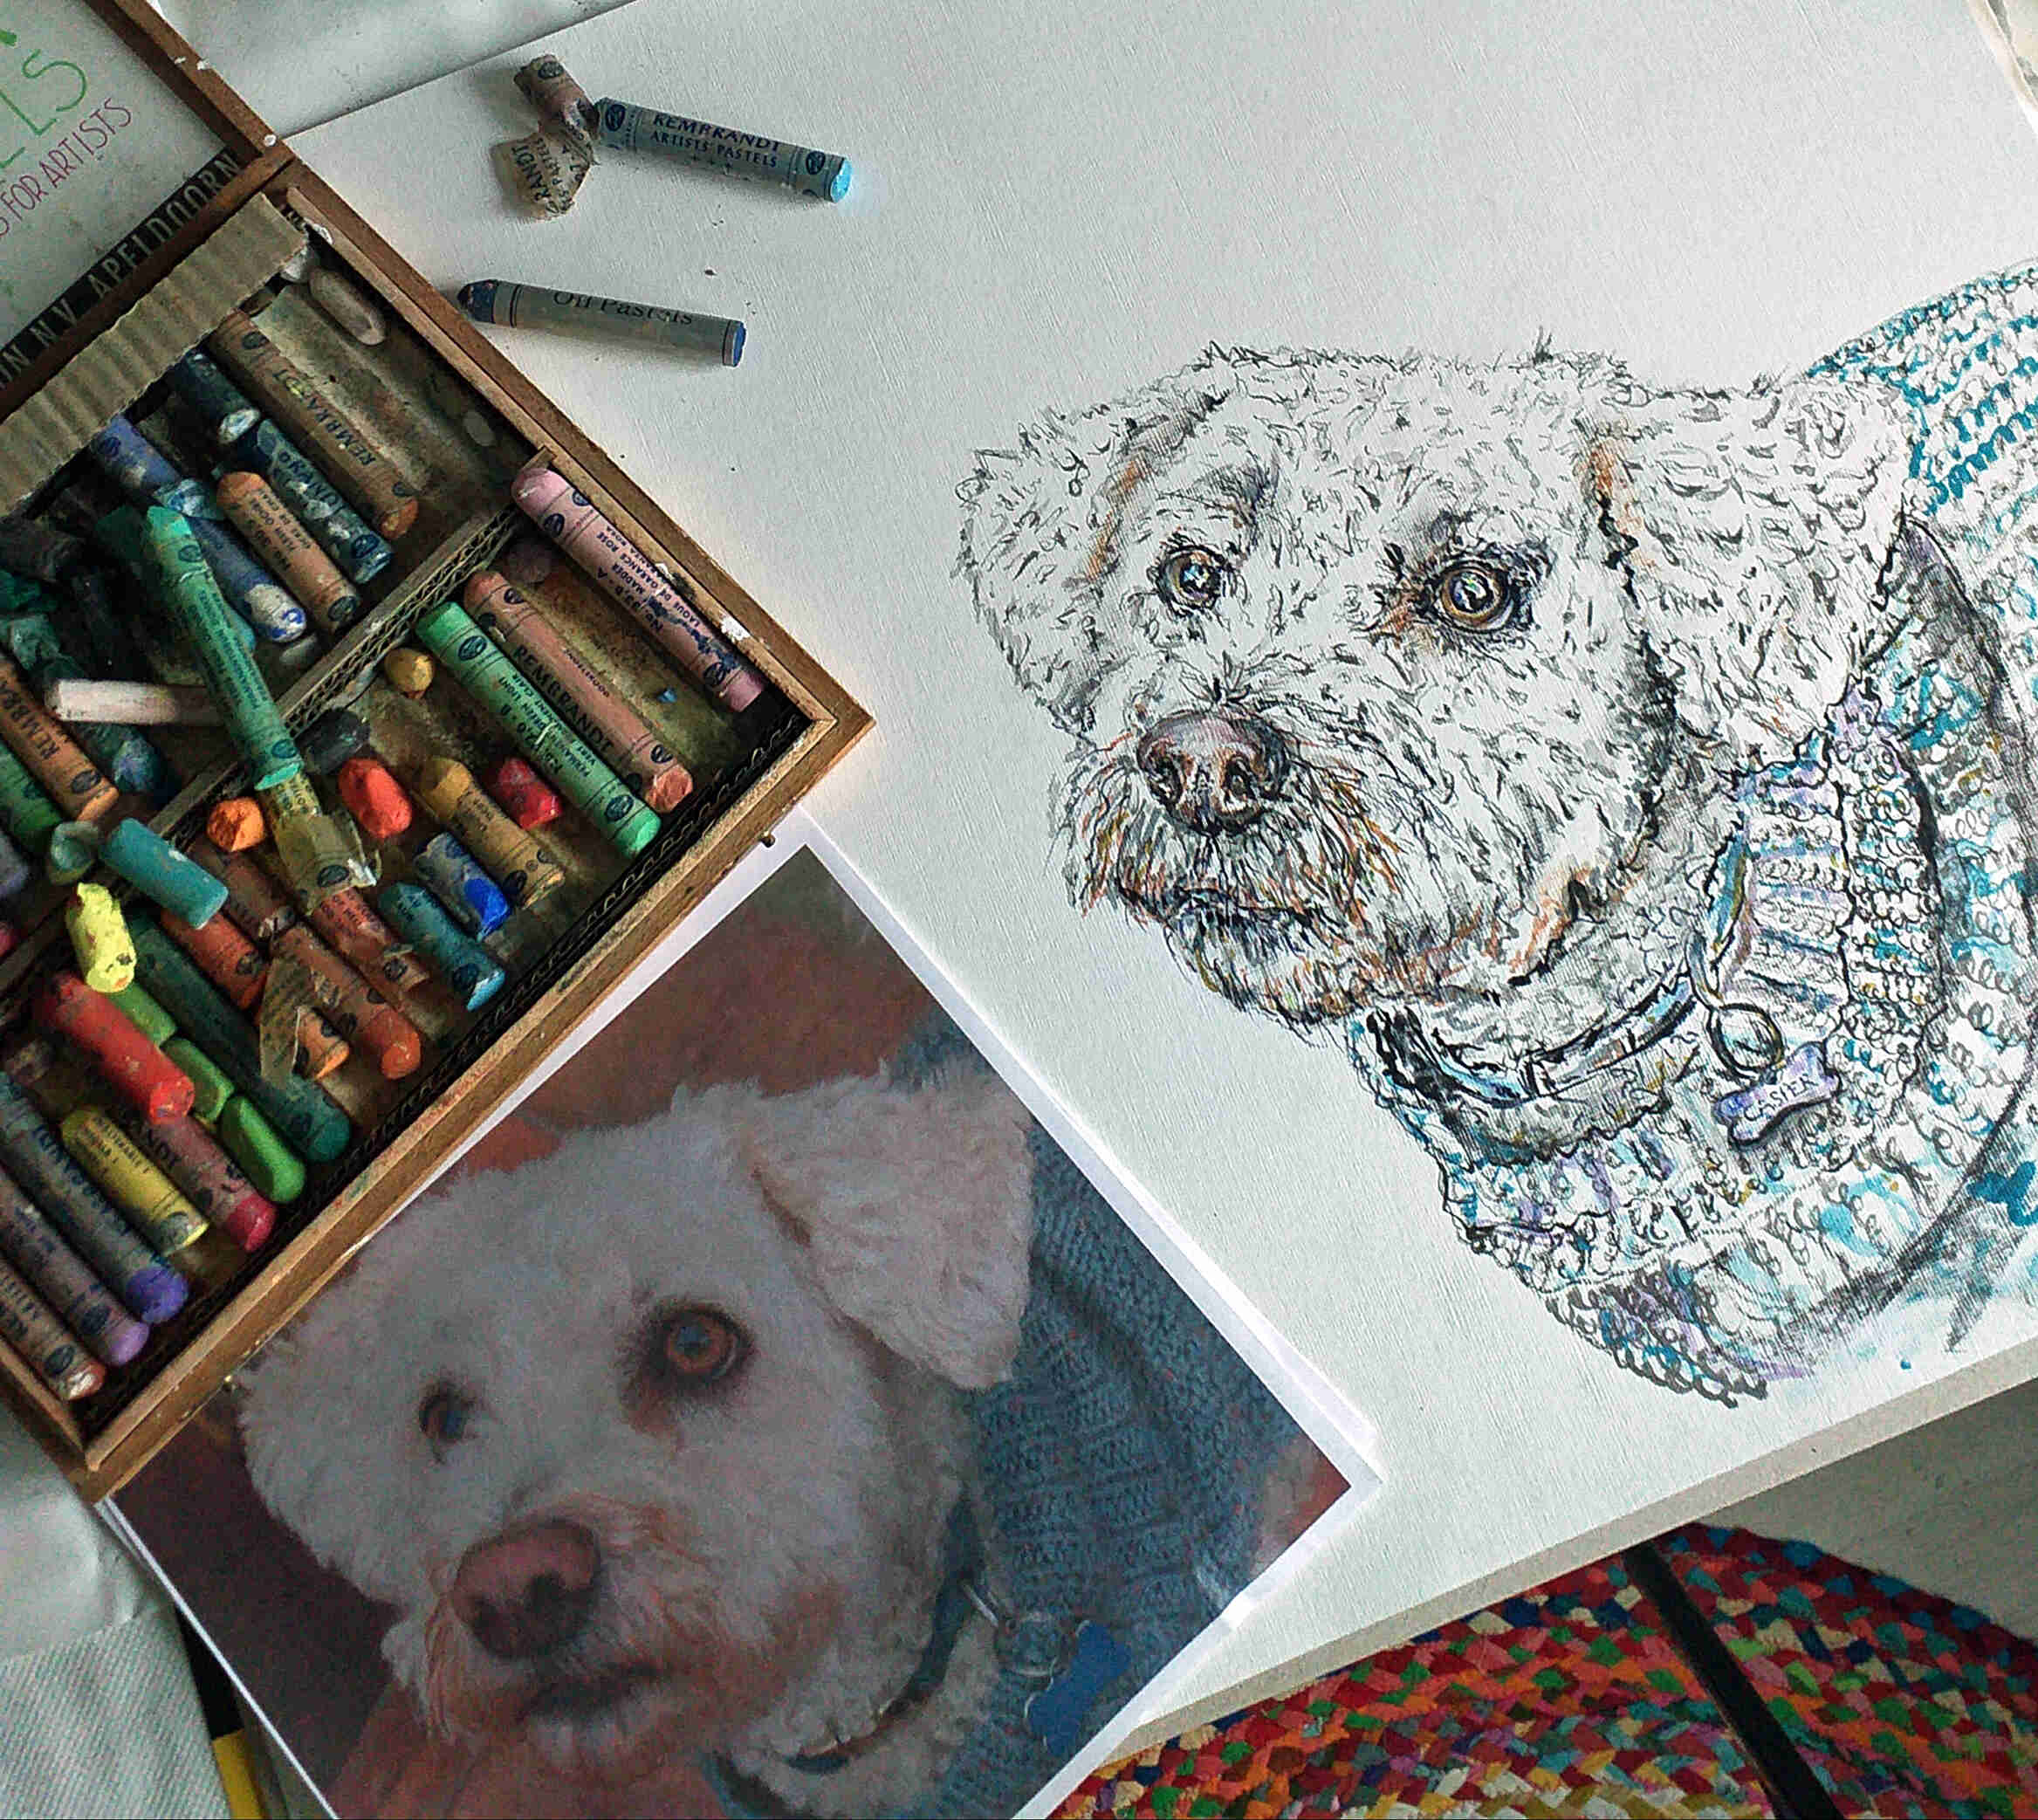 A work in progress picture of a bichon frise